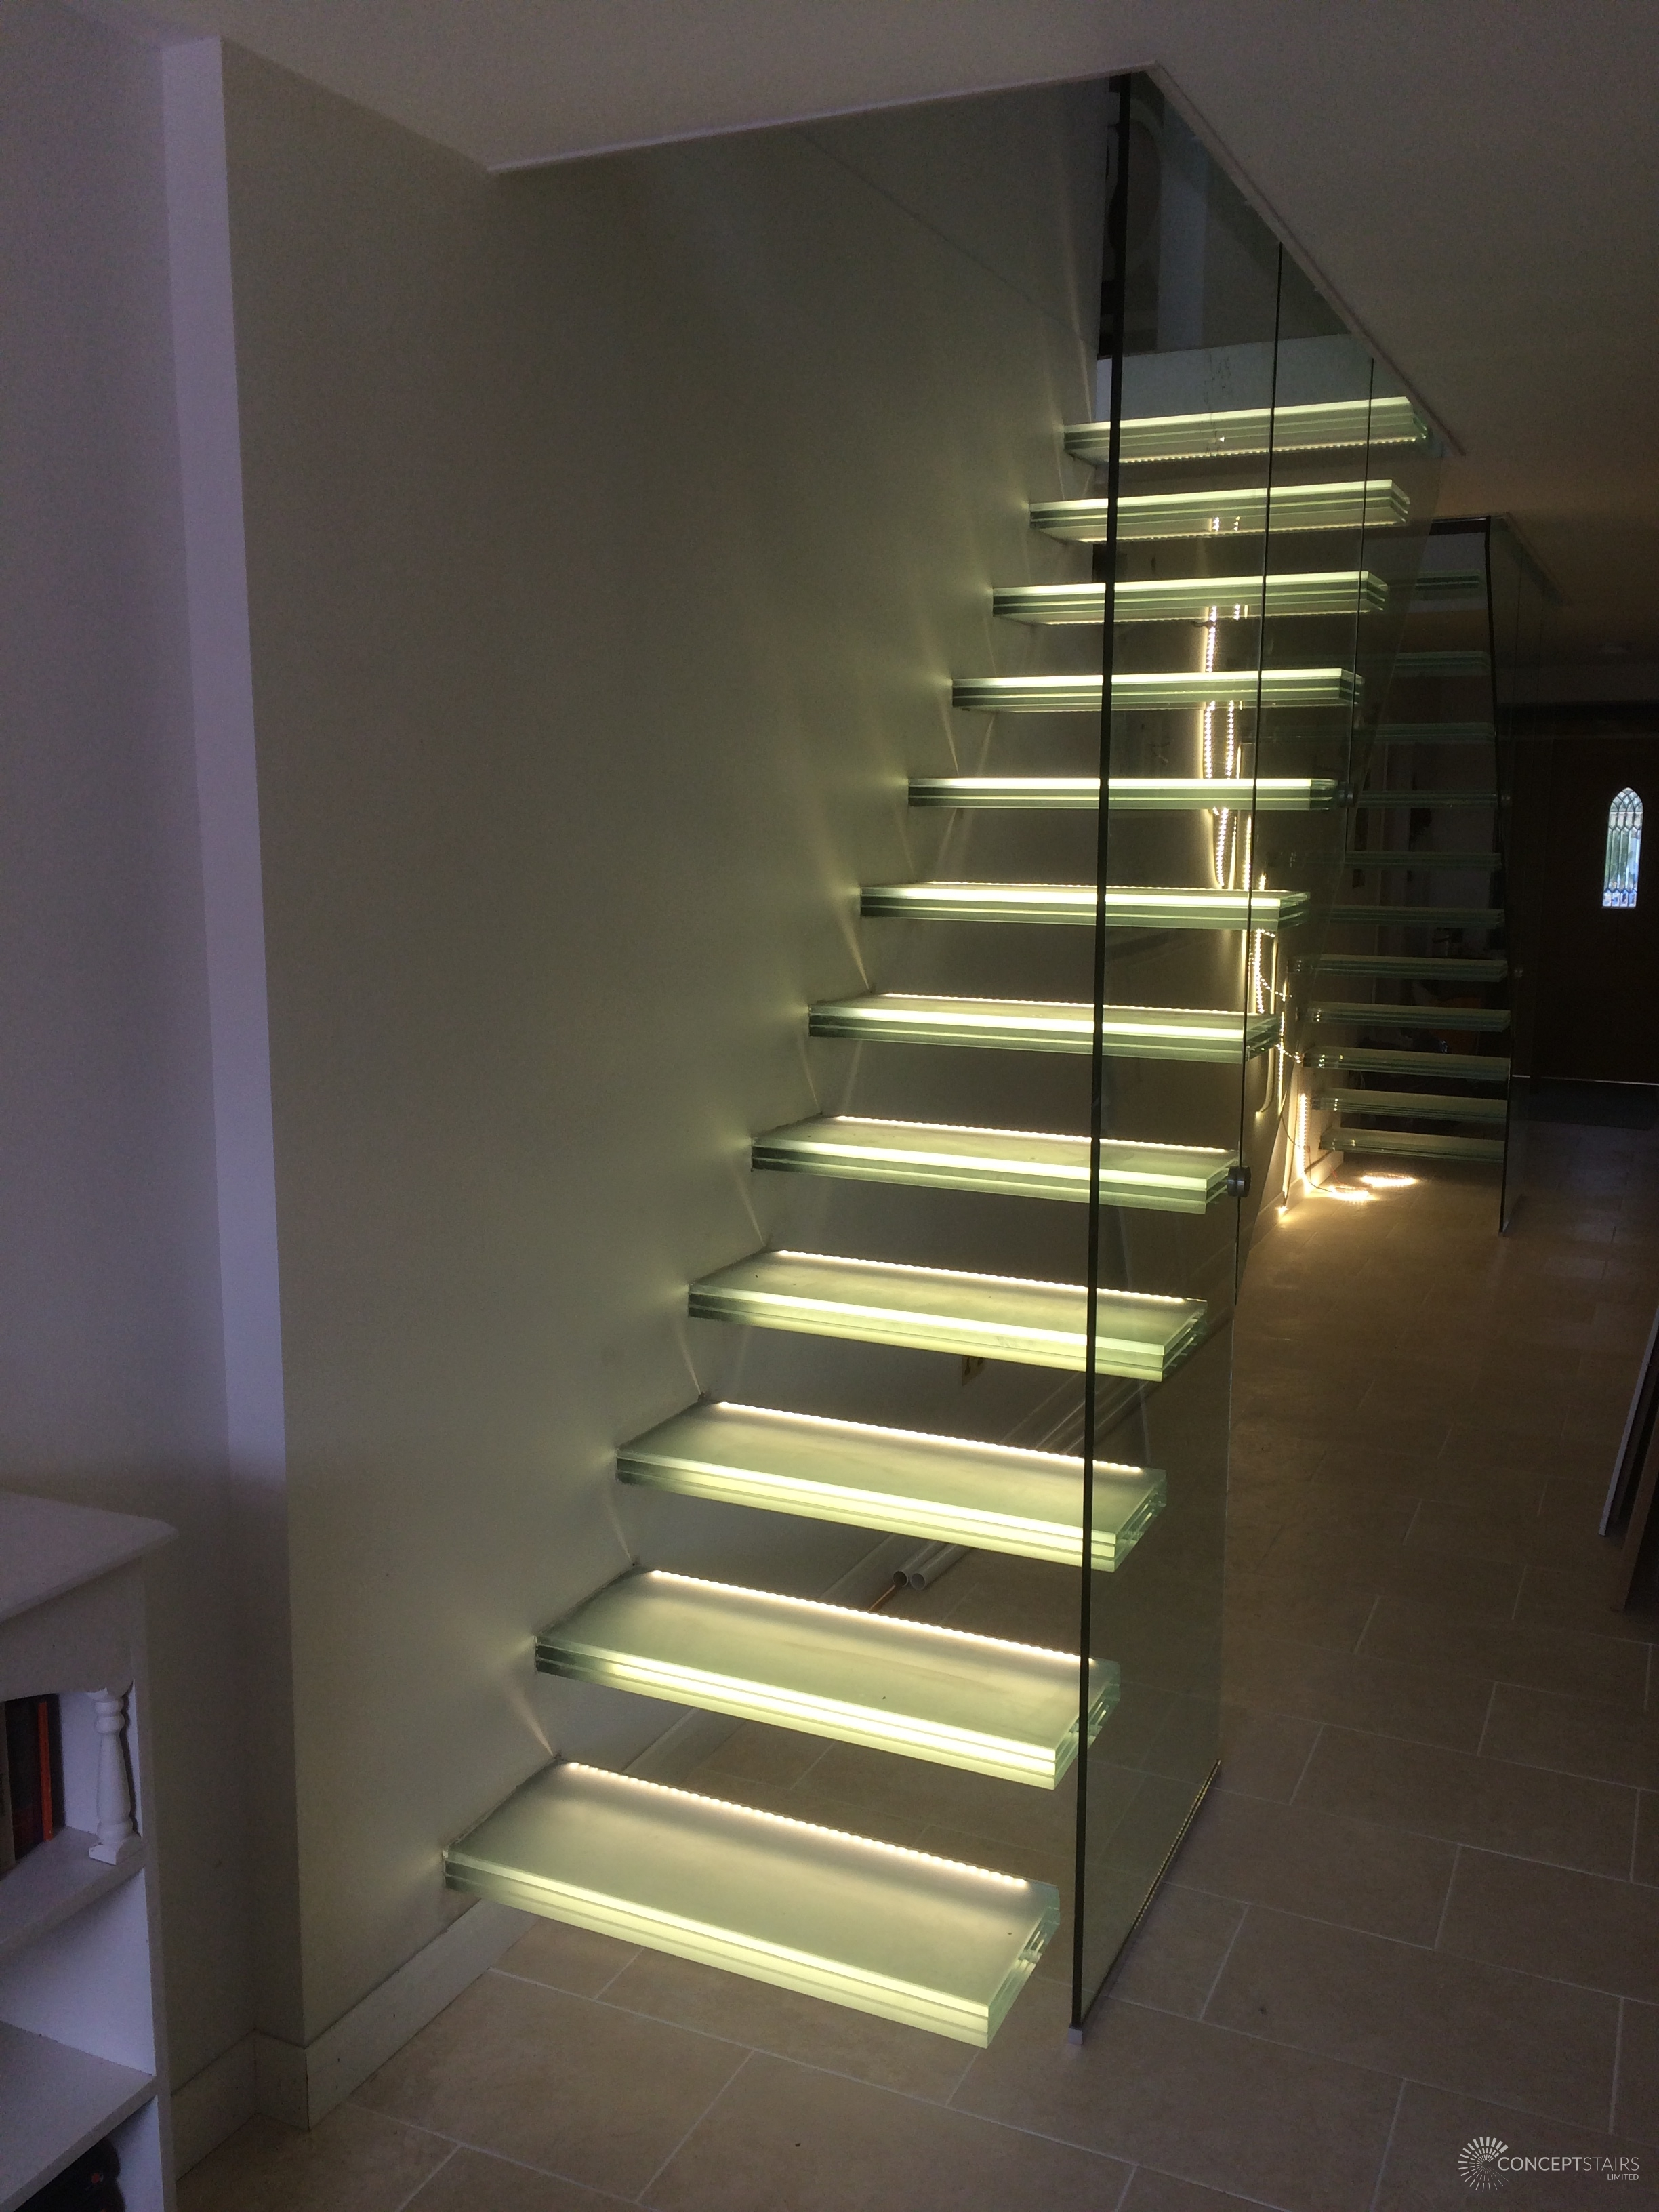 guildford nearing completion of bespoke double flight glass cantilever staircases bespoke glass staircase